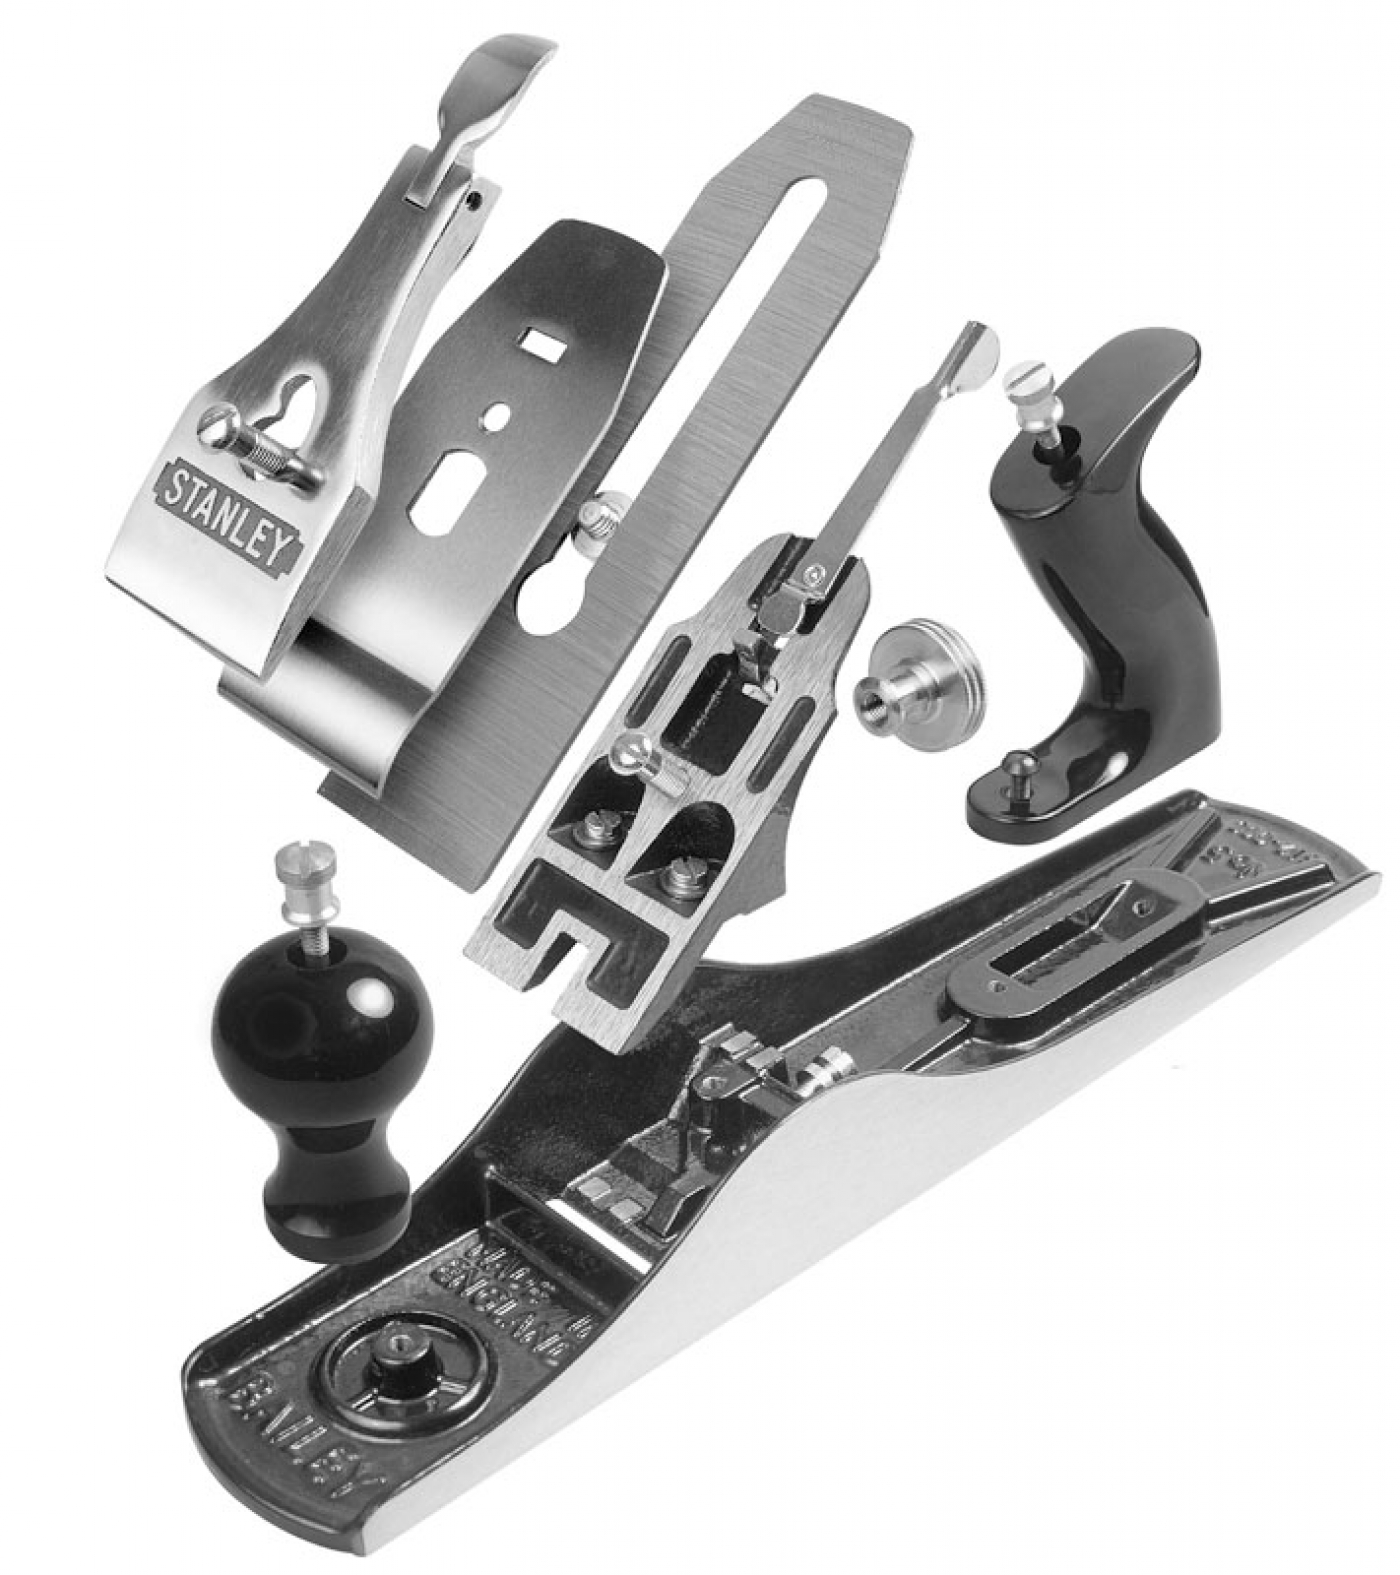 BAILEY® PROFESSIONAL JACK BENCH PLANES # 5